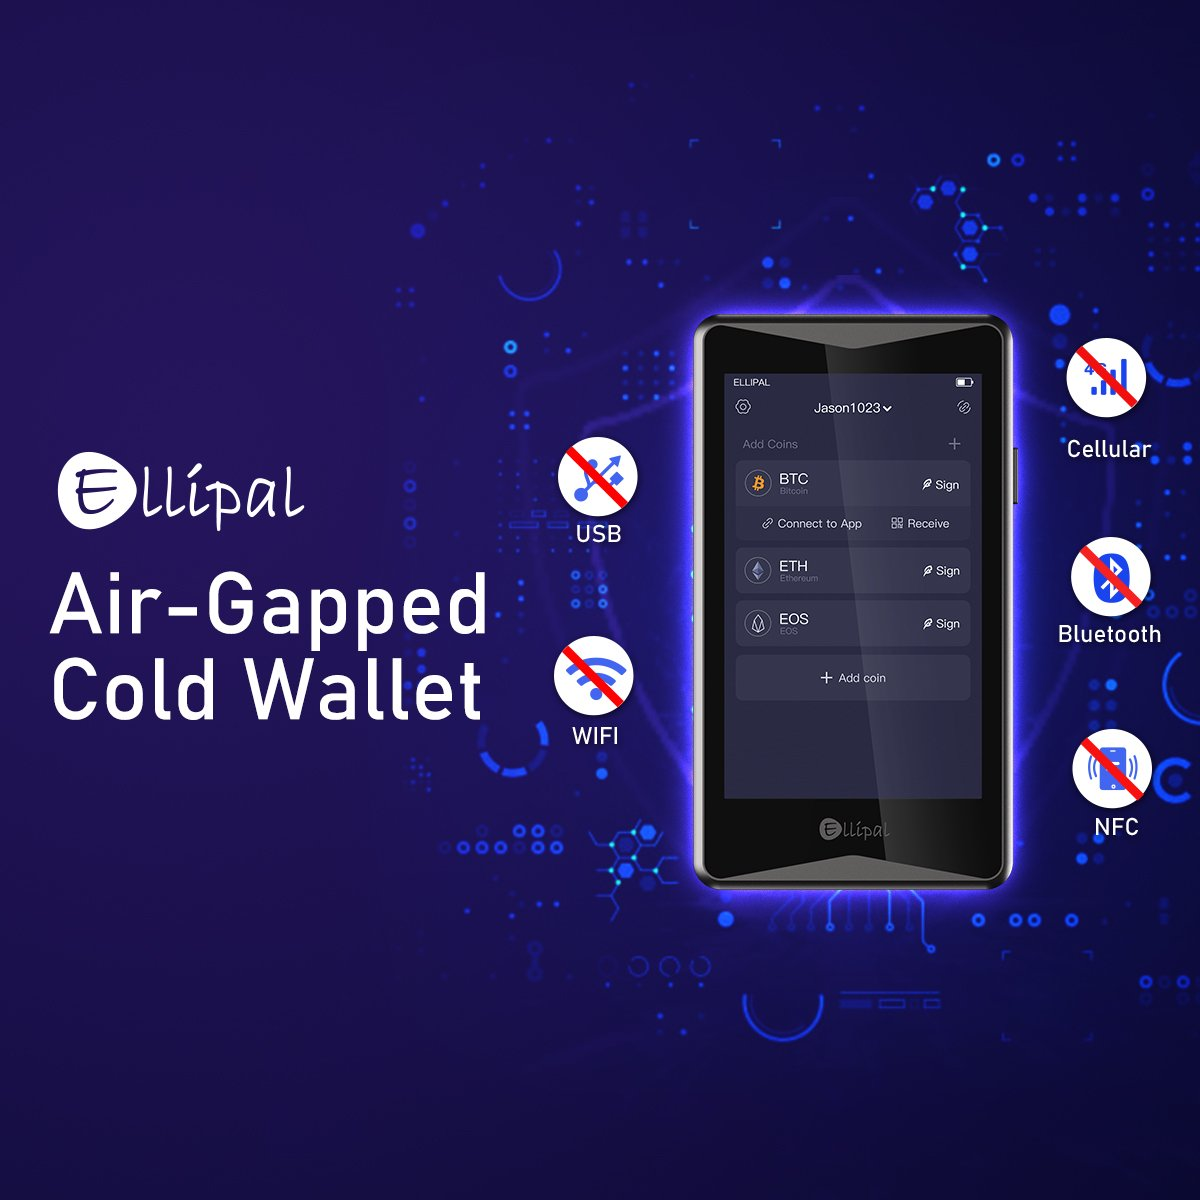 Ellipal - Air-Gapped Cold Wallet